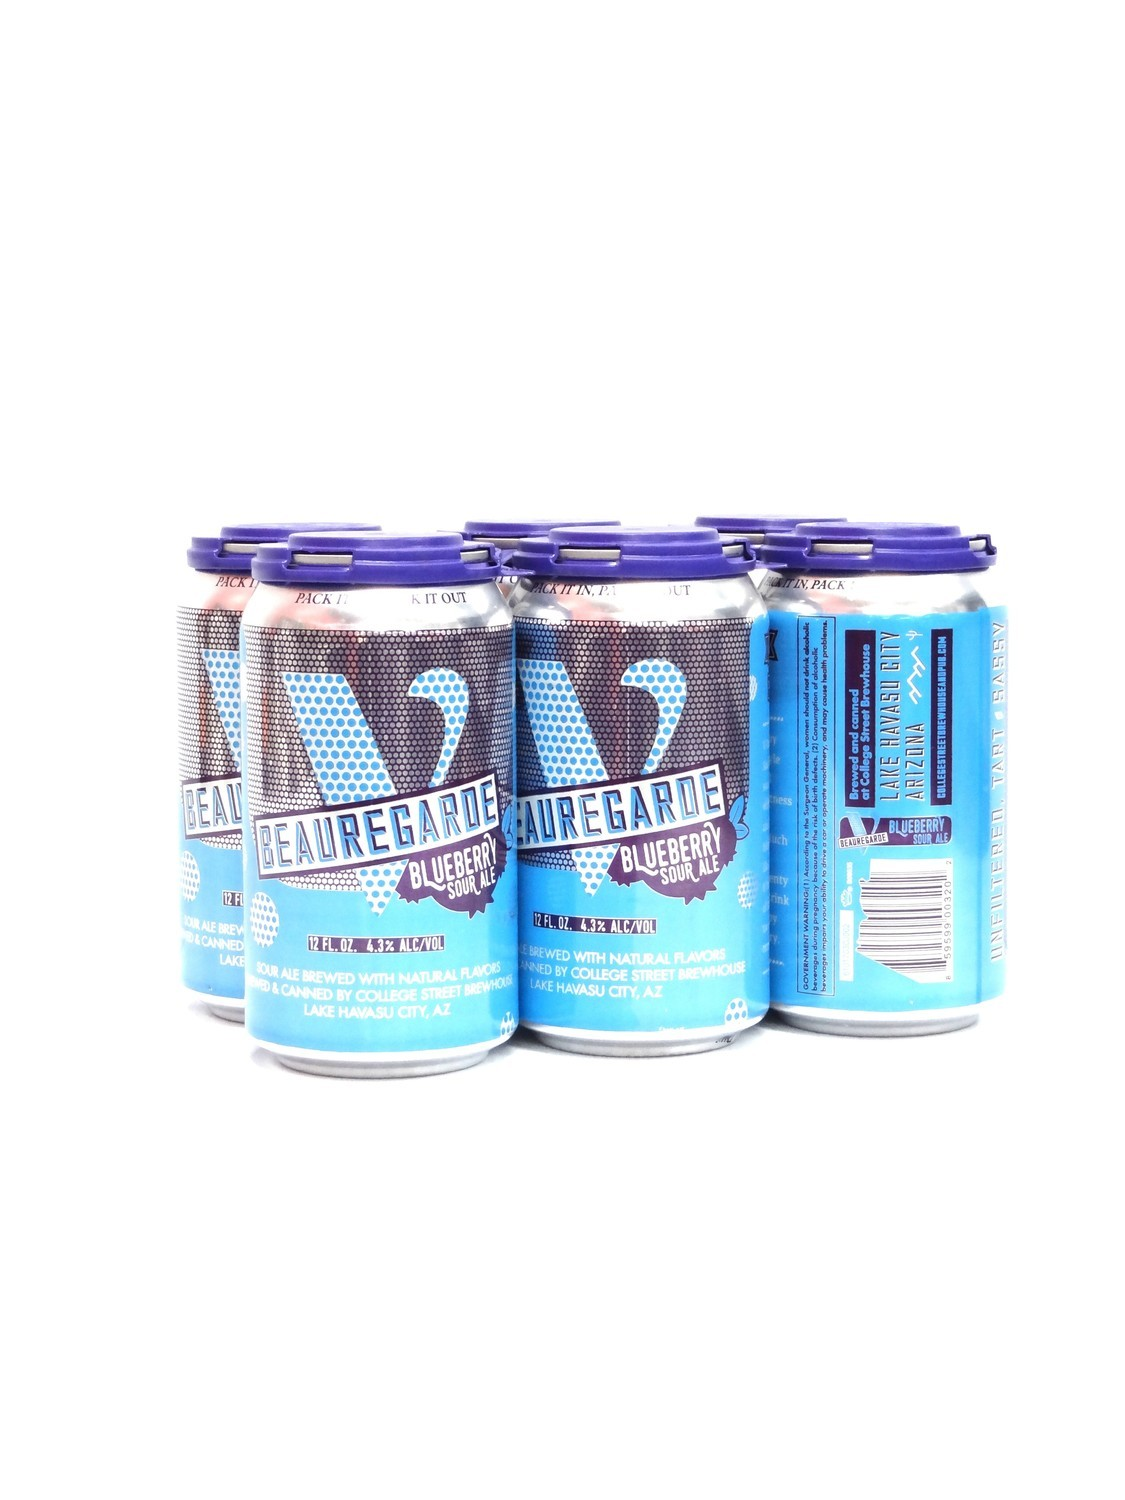 Beauregarde Blueberry Sour Ale 6pk/12oz By College Street Brewhouse (F6-3)C